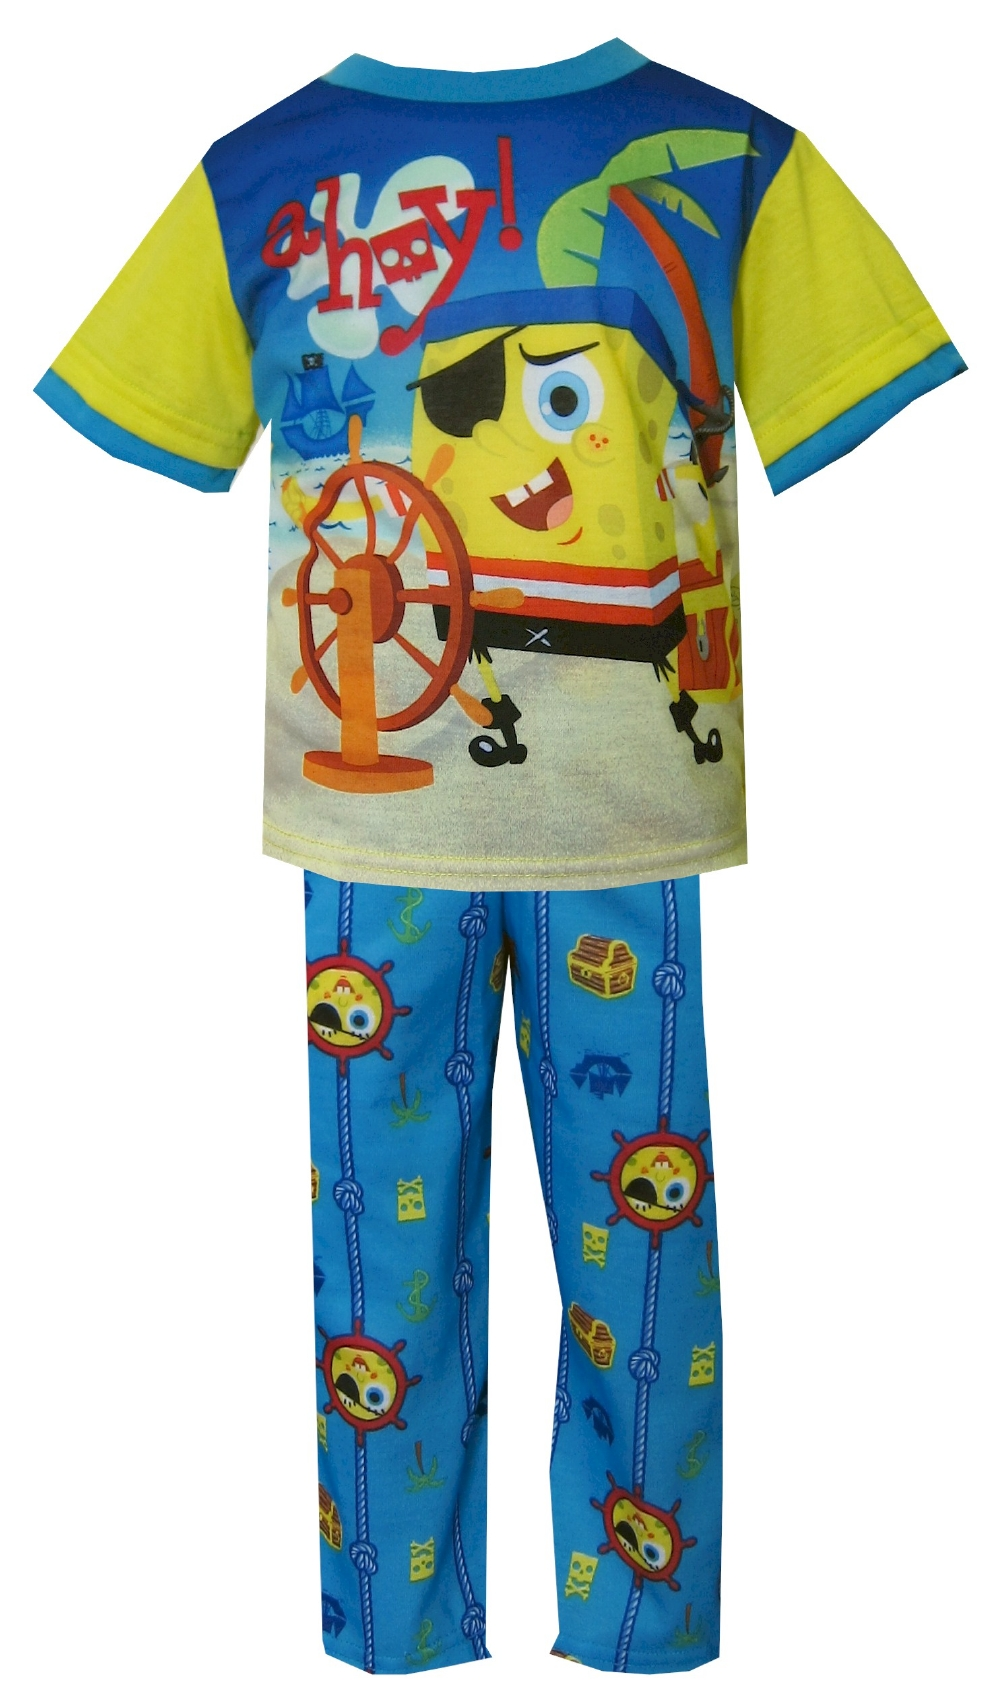 Picture Of Pajamas - ClipArt Best